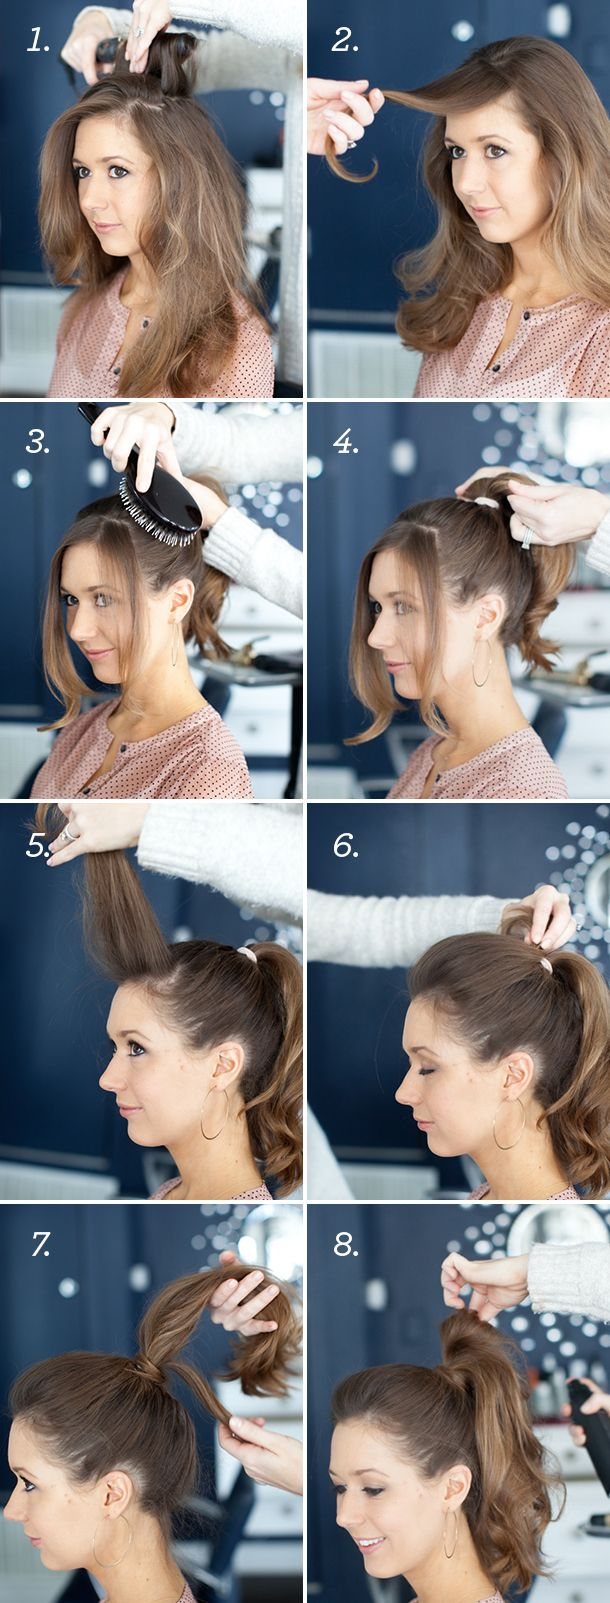 150 best ponytail tutorials images on pinterest ponytail tutorial how to do a perfect high ponytail solutioingenieria Images